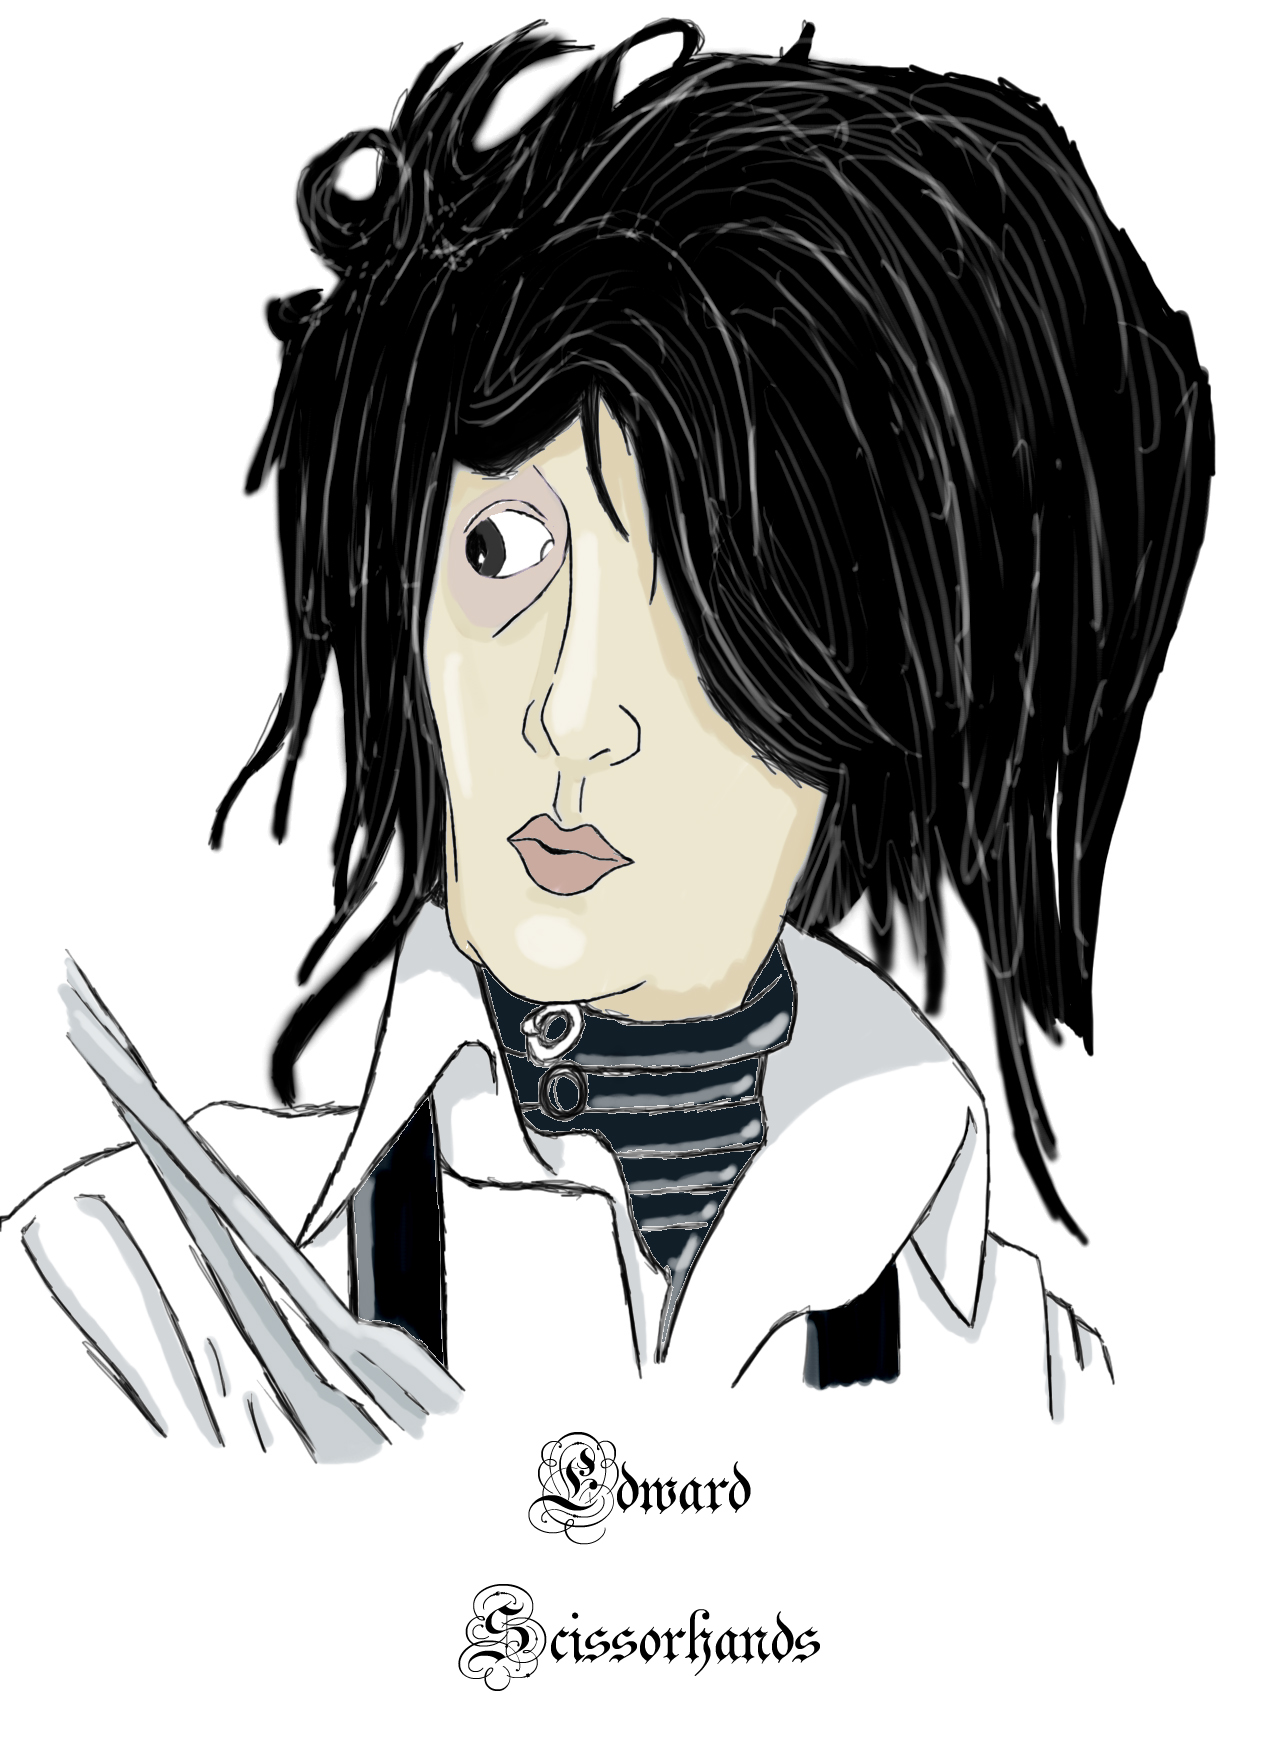 Edward Scissorhands by Insight